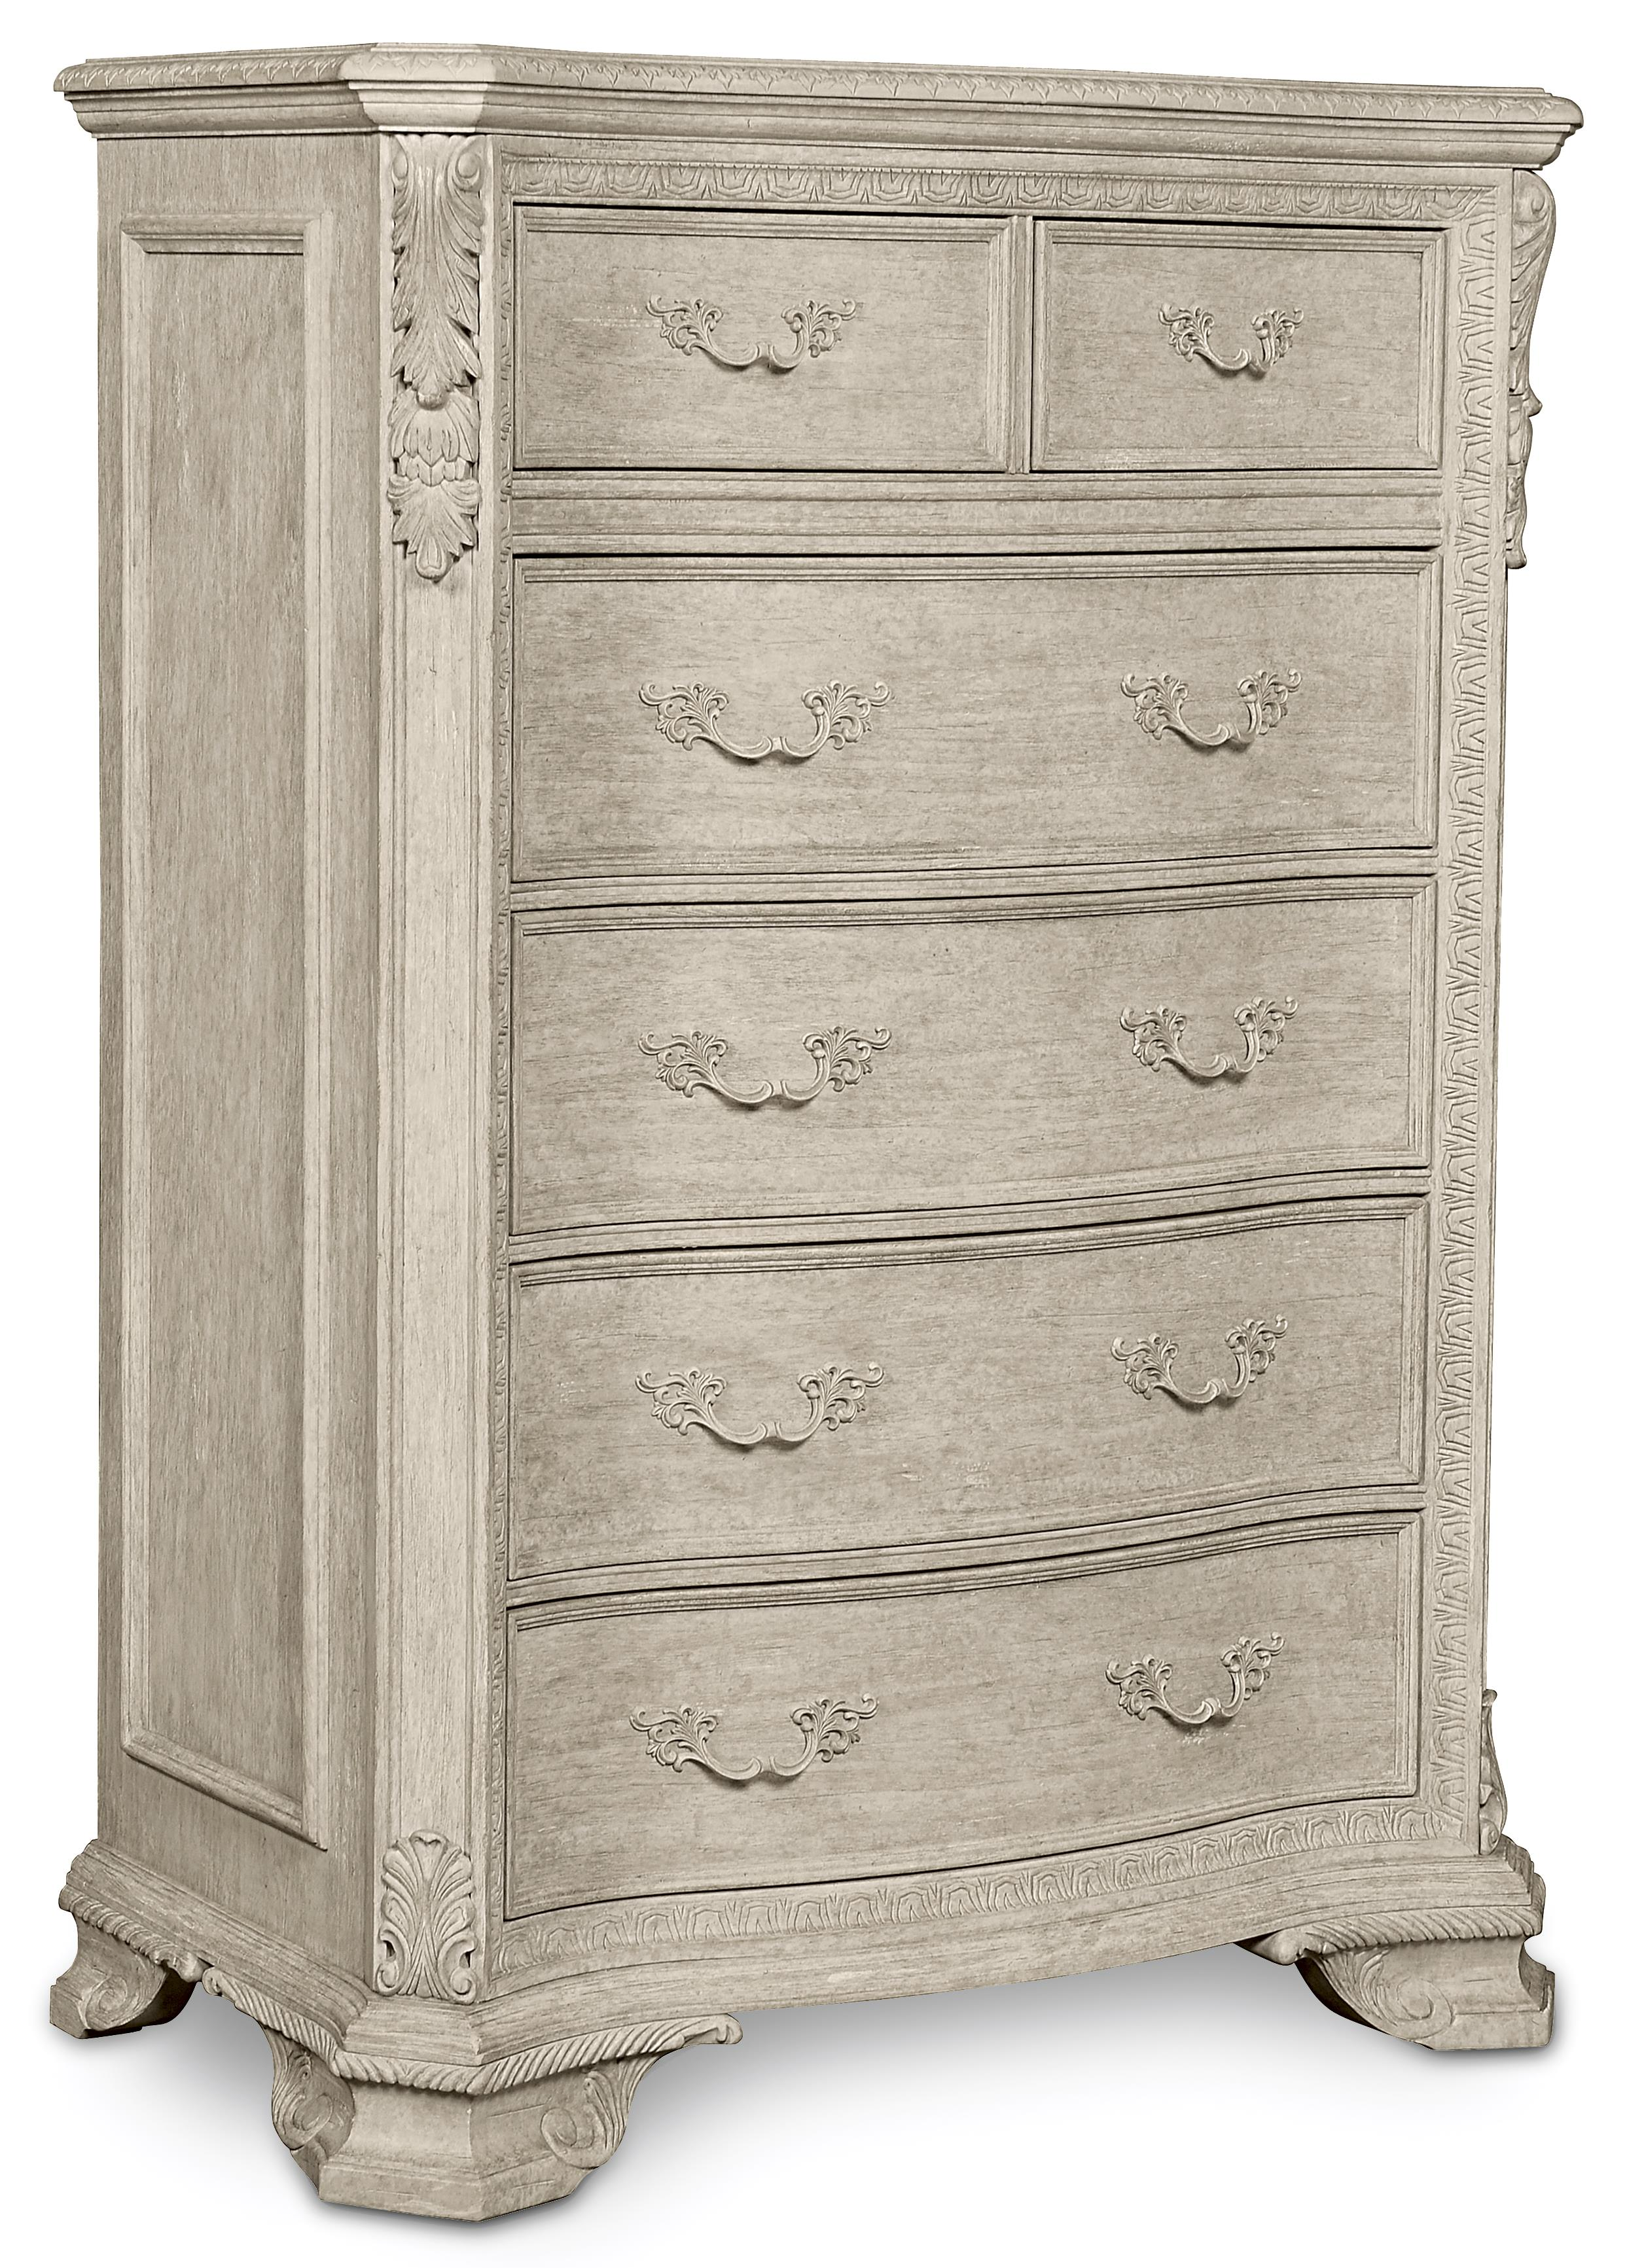 A.R.T. Furniture Inc Renaissance Drawer Chest - Item Number: 243151-2617